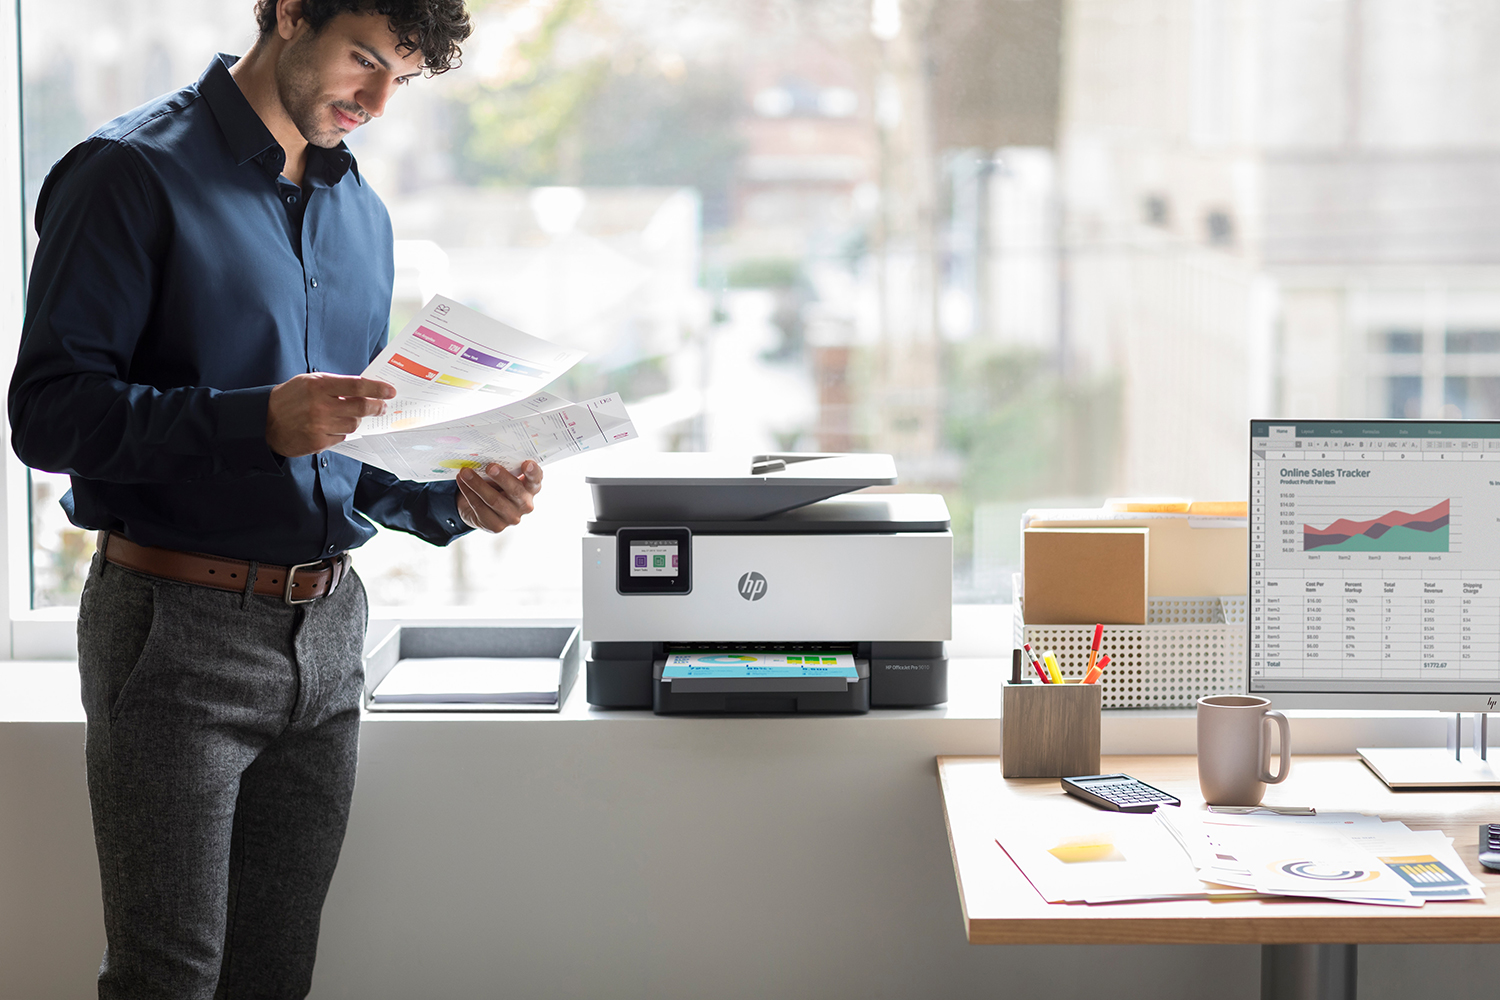 Workplace with HP Printer